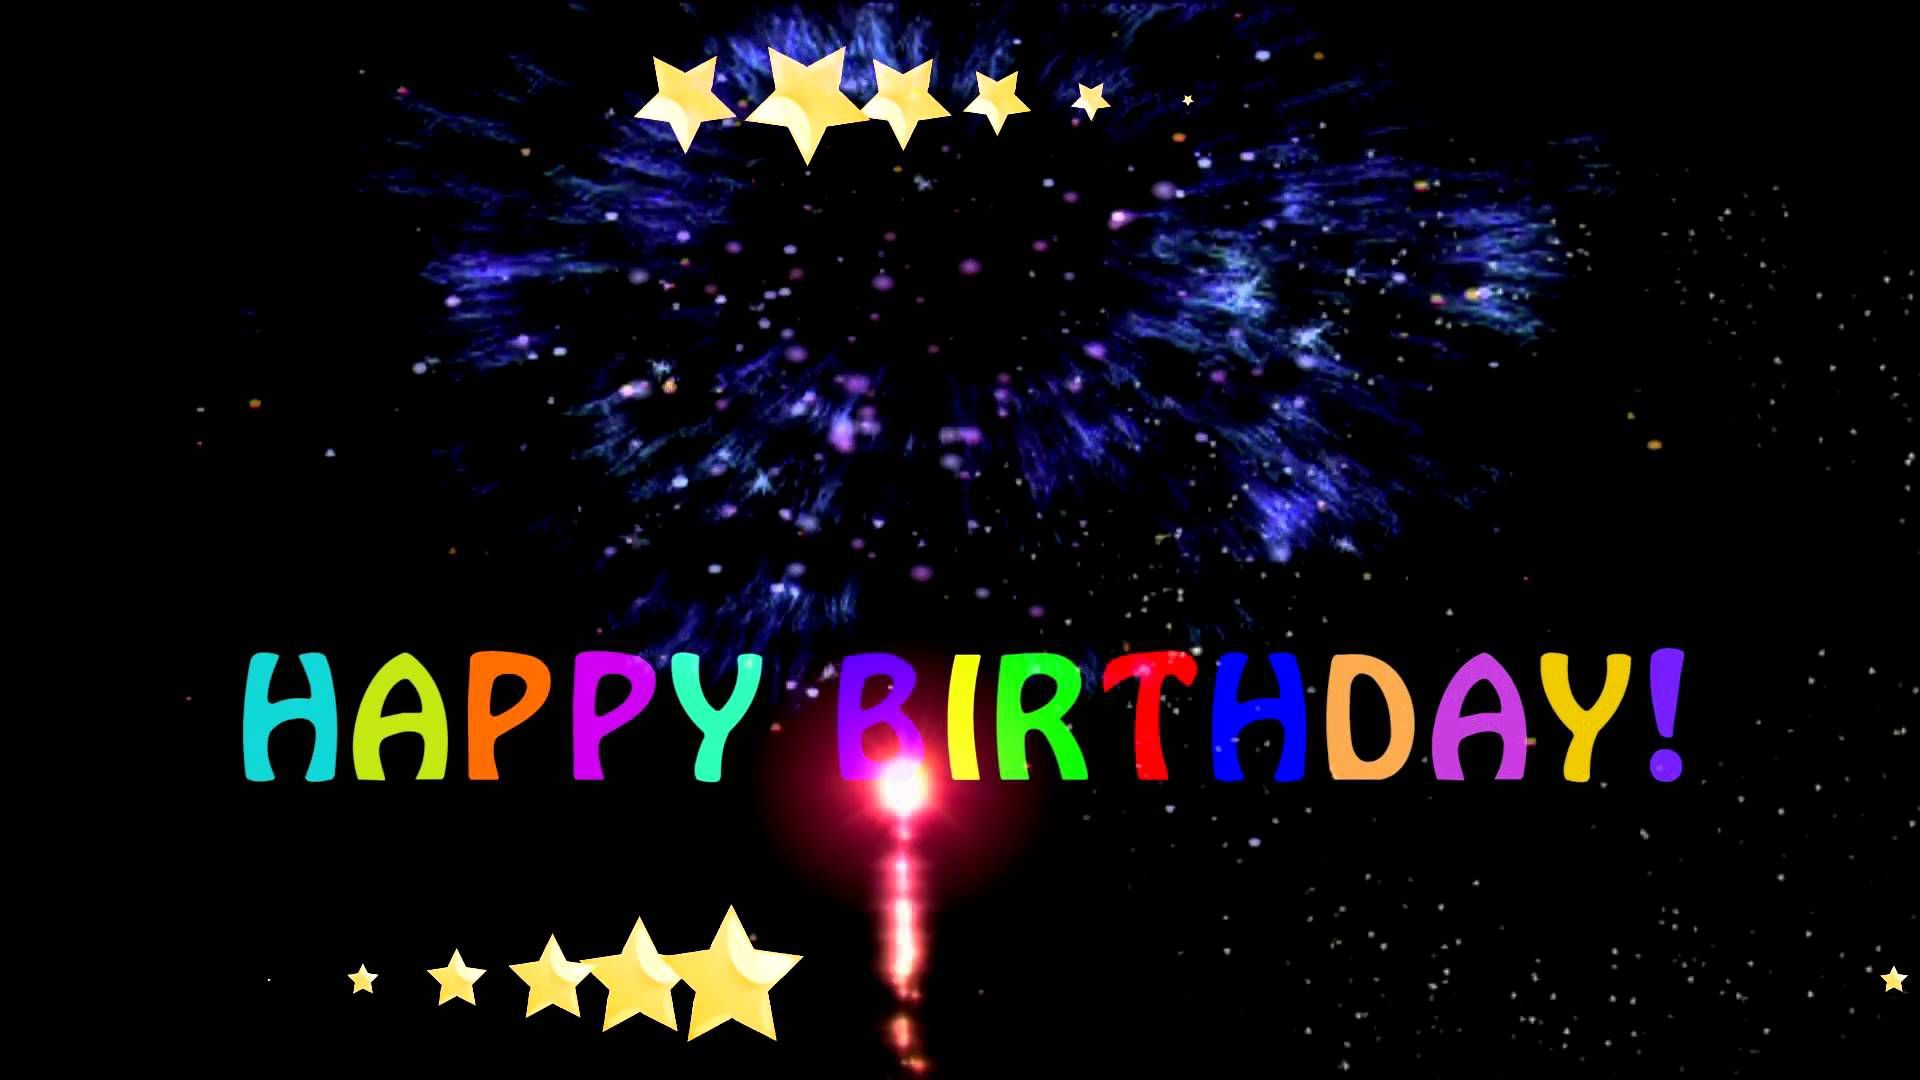 Top 10 Beautiful Happy Birthday Hd Images Free Download